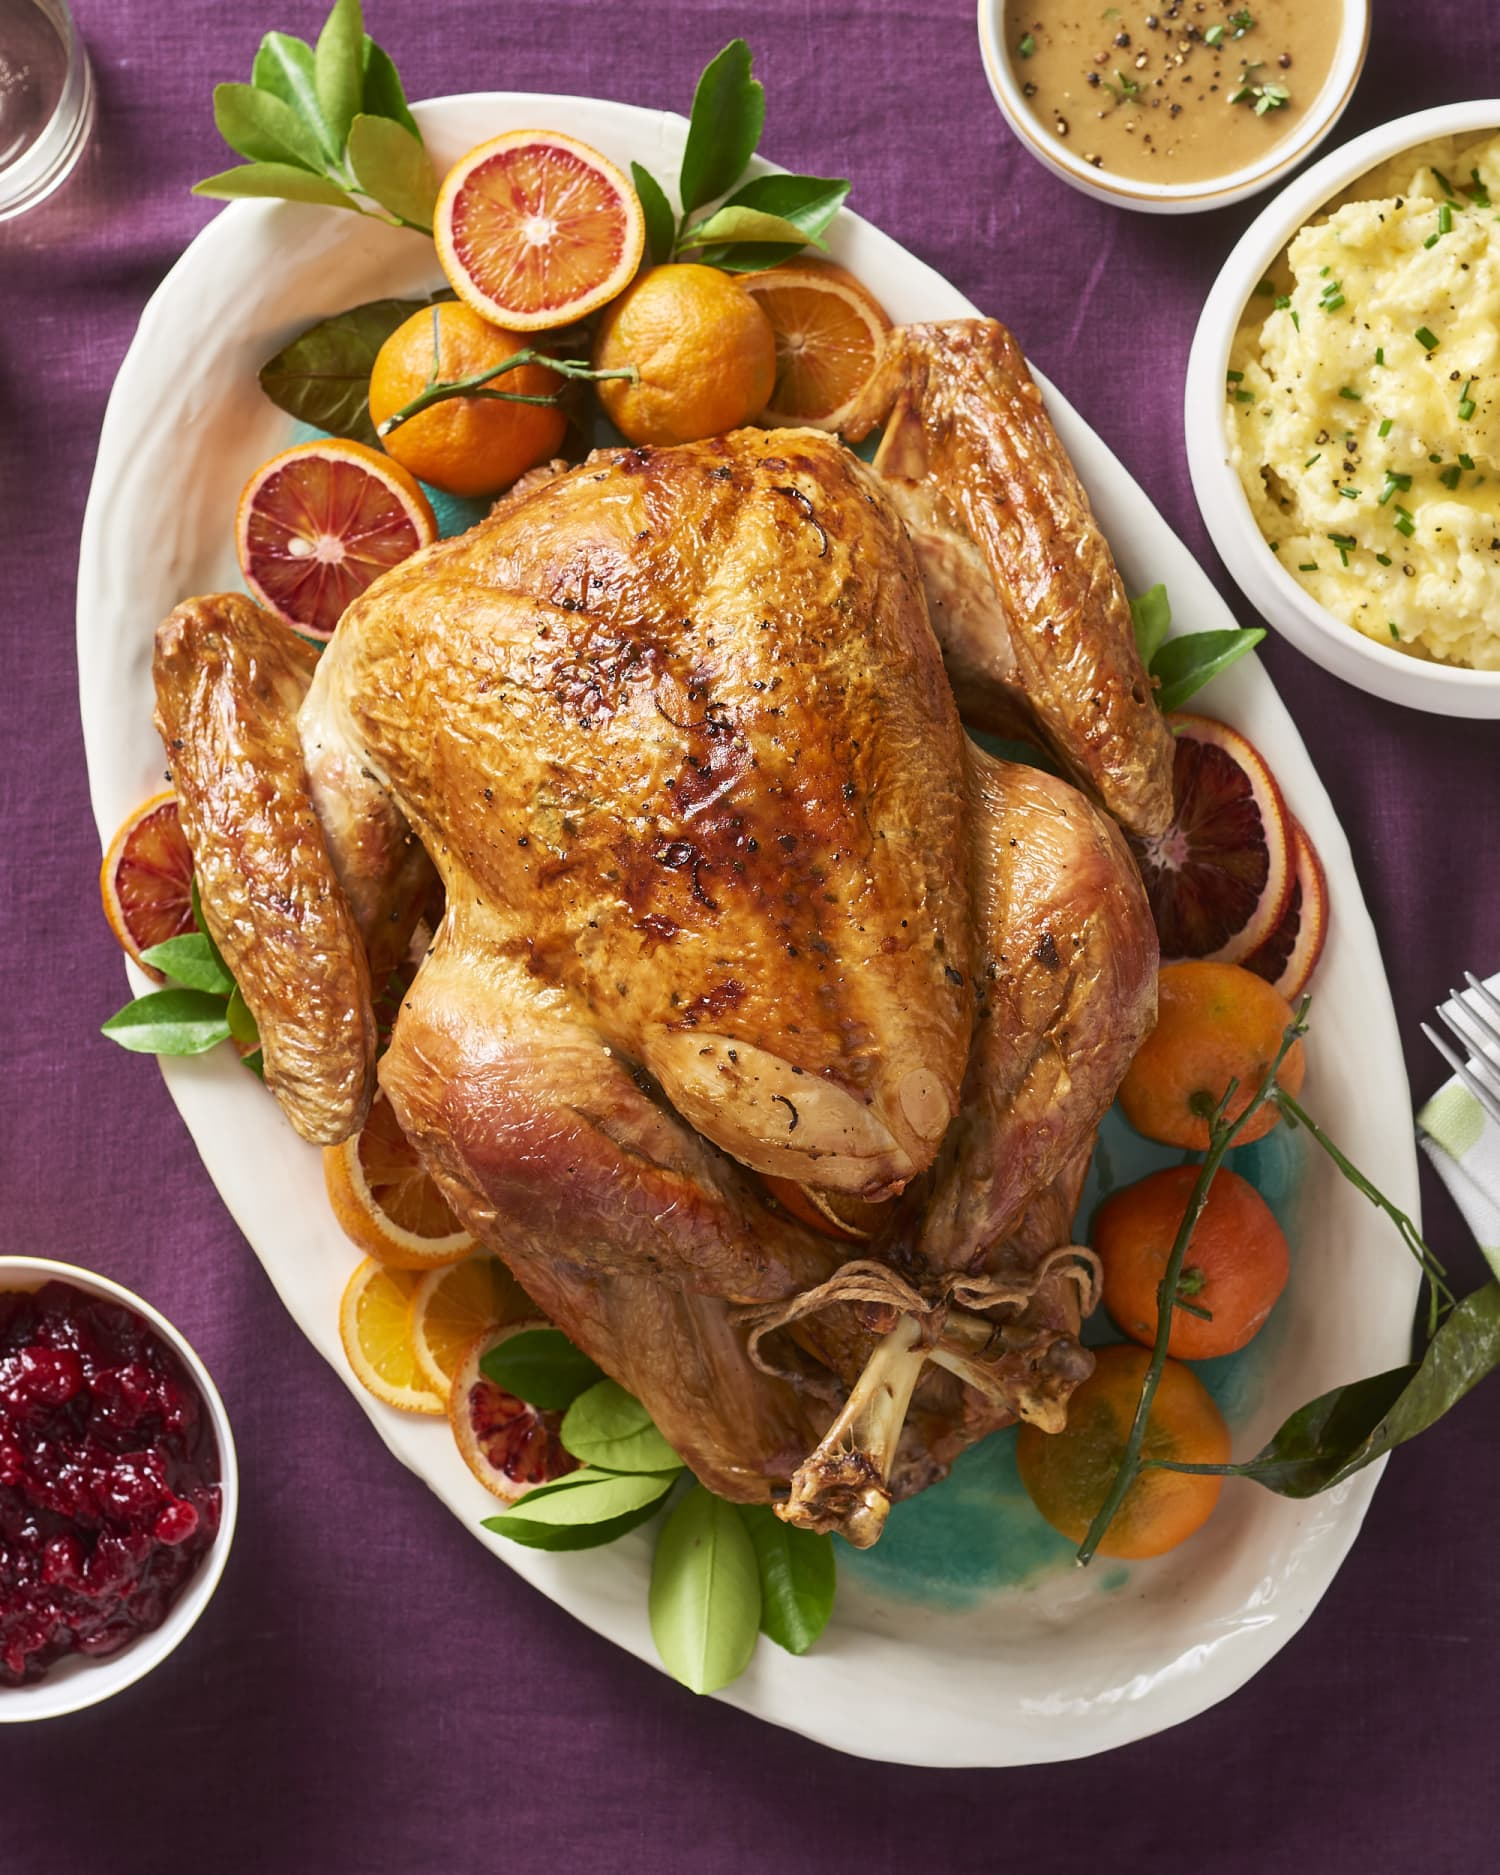 We Tried Every Thanksgiving Recipe to Find the Absolute Best in Each Category